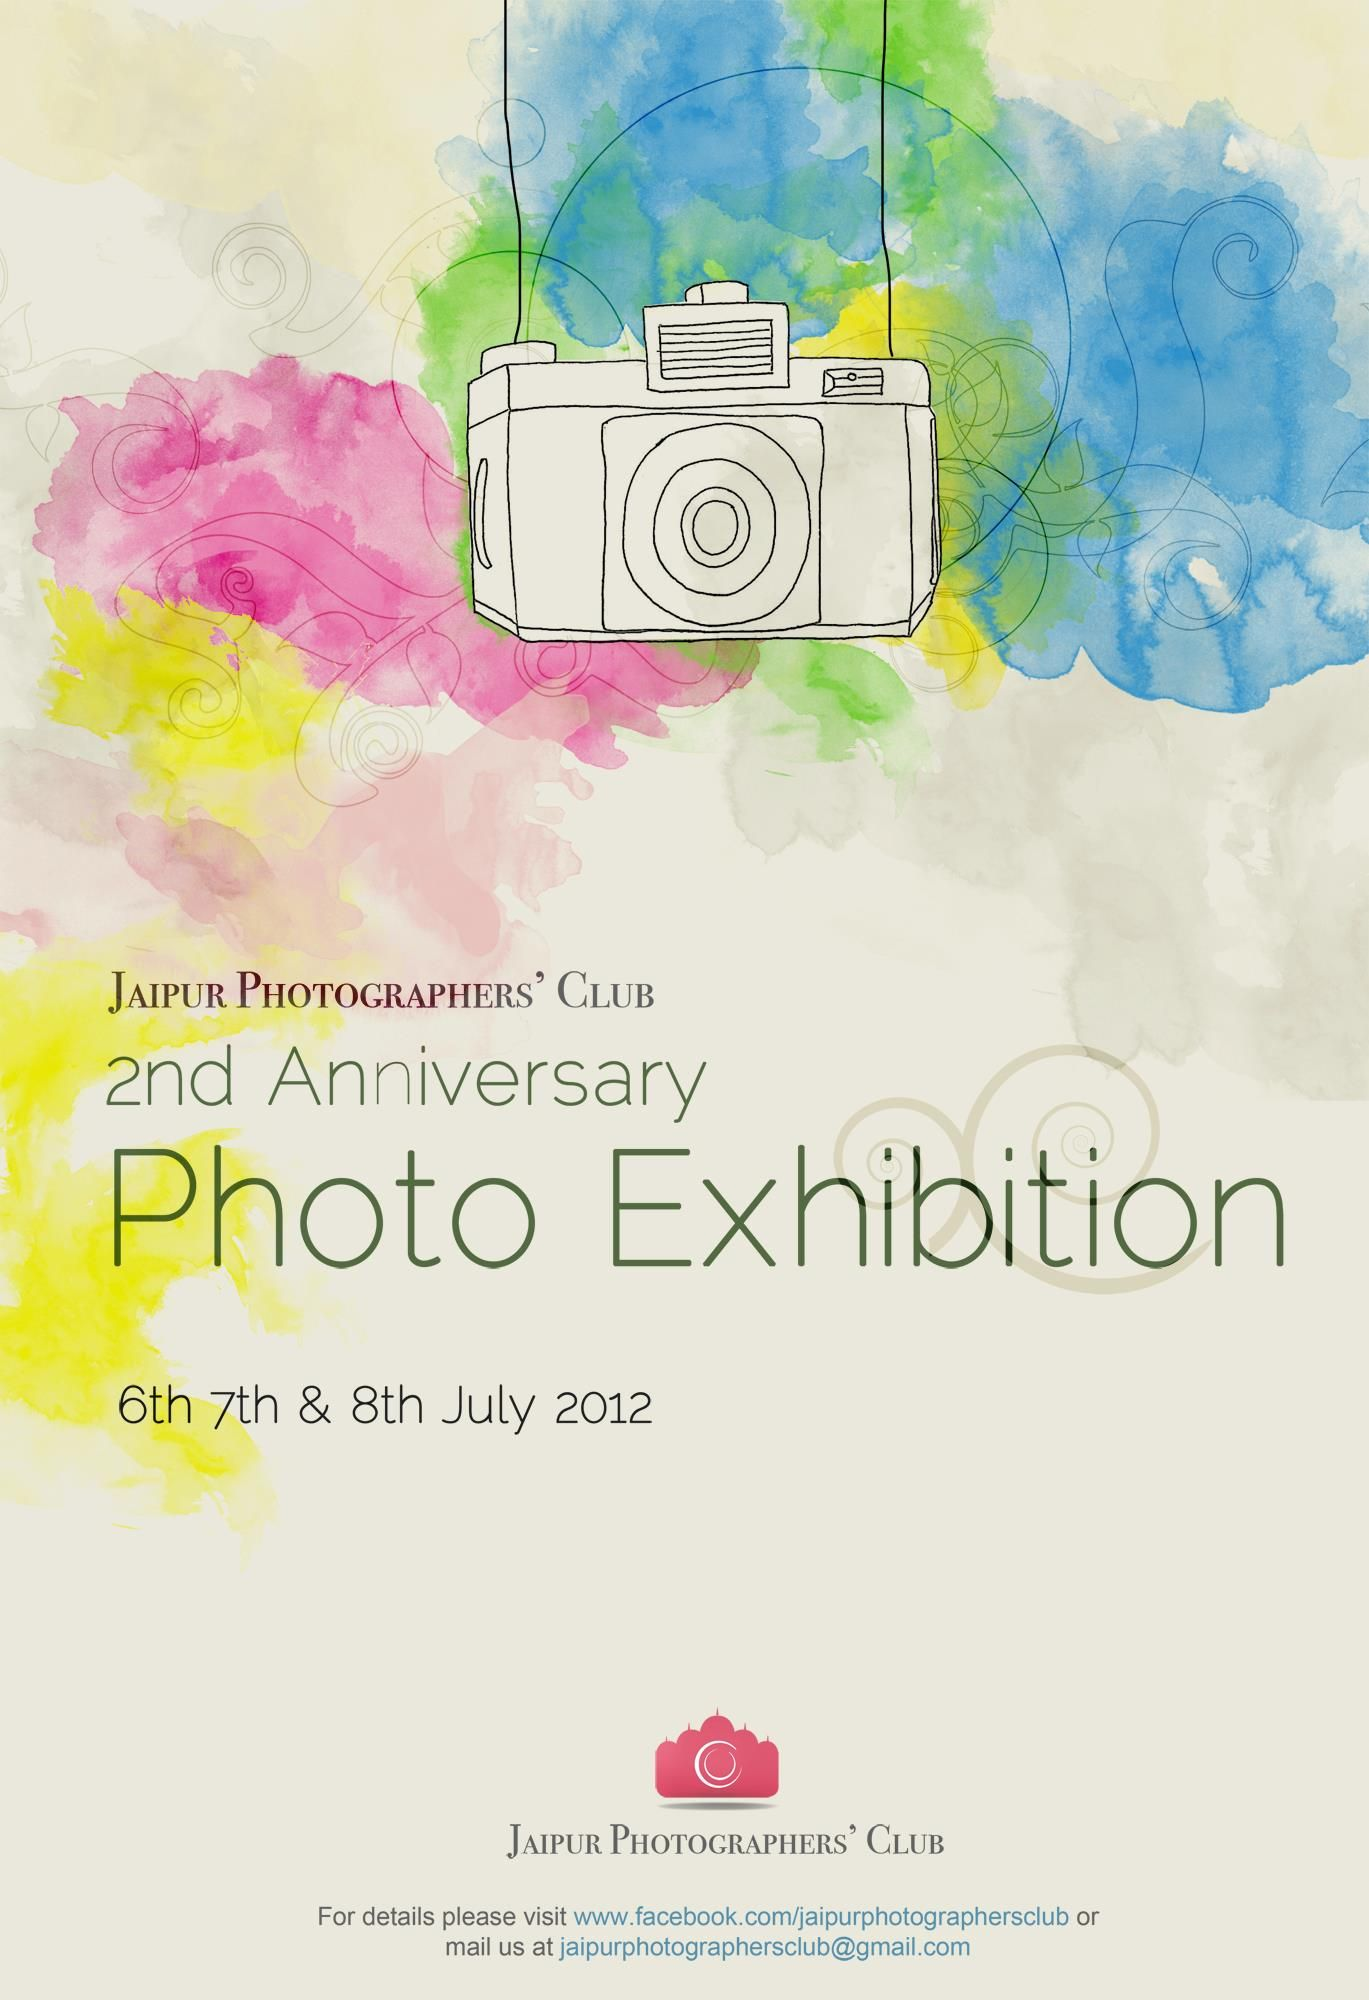 Photography exhibition poster my work pinterest exhibition photography exhibition poster stopboris